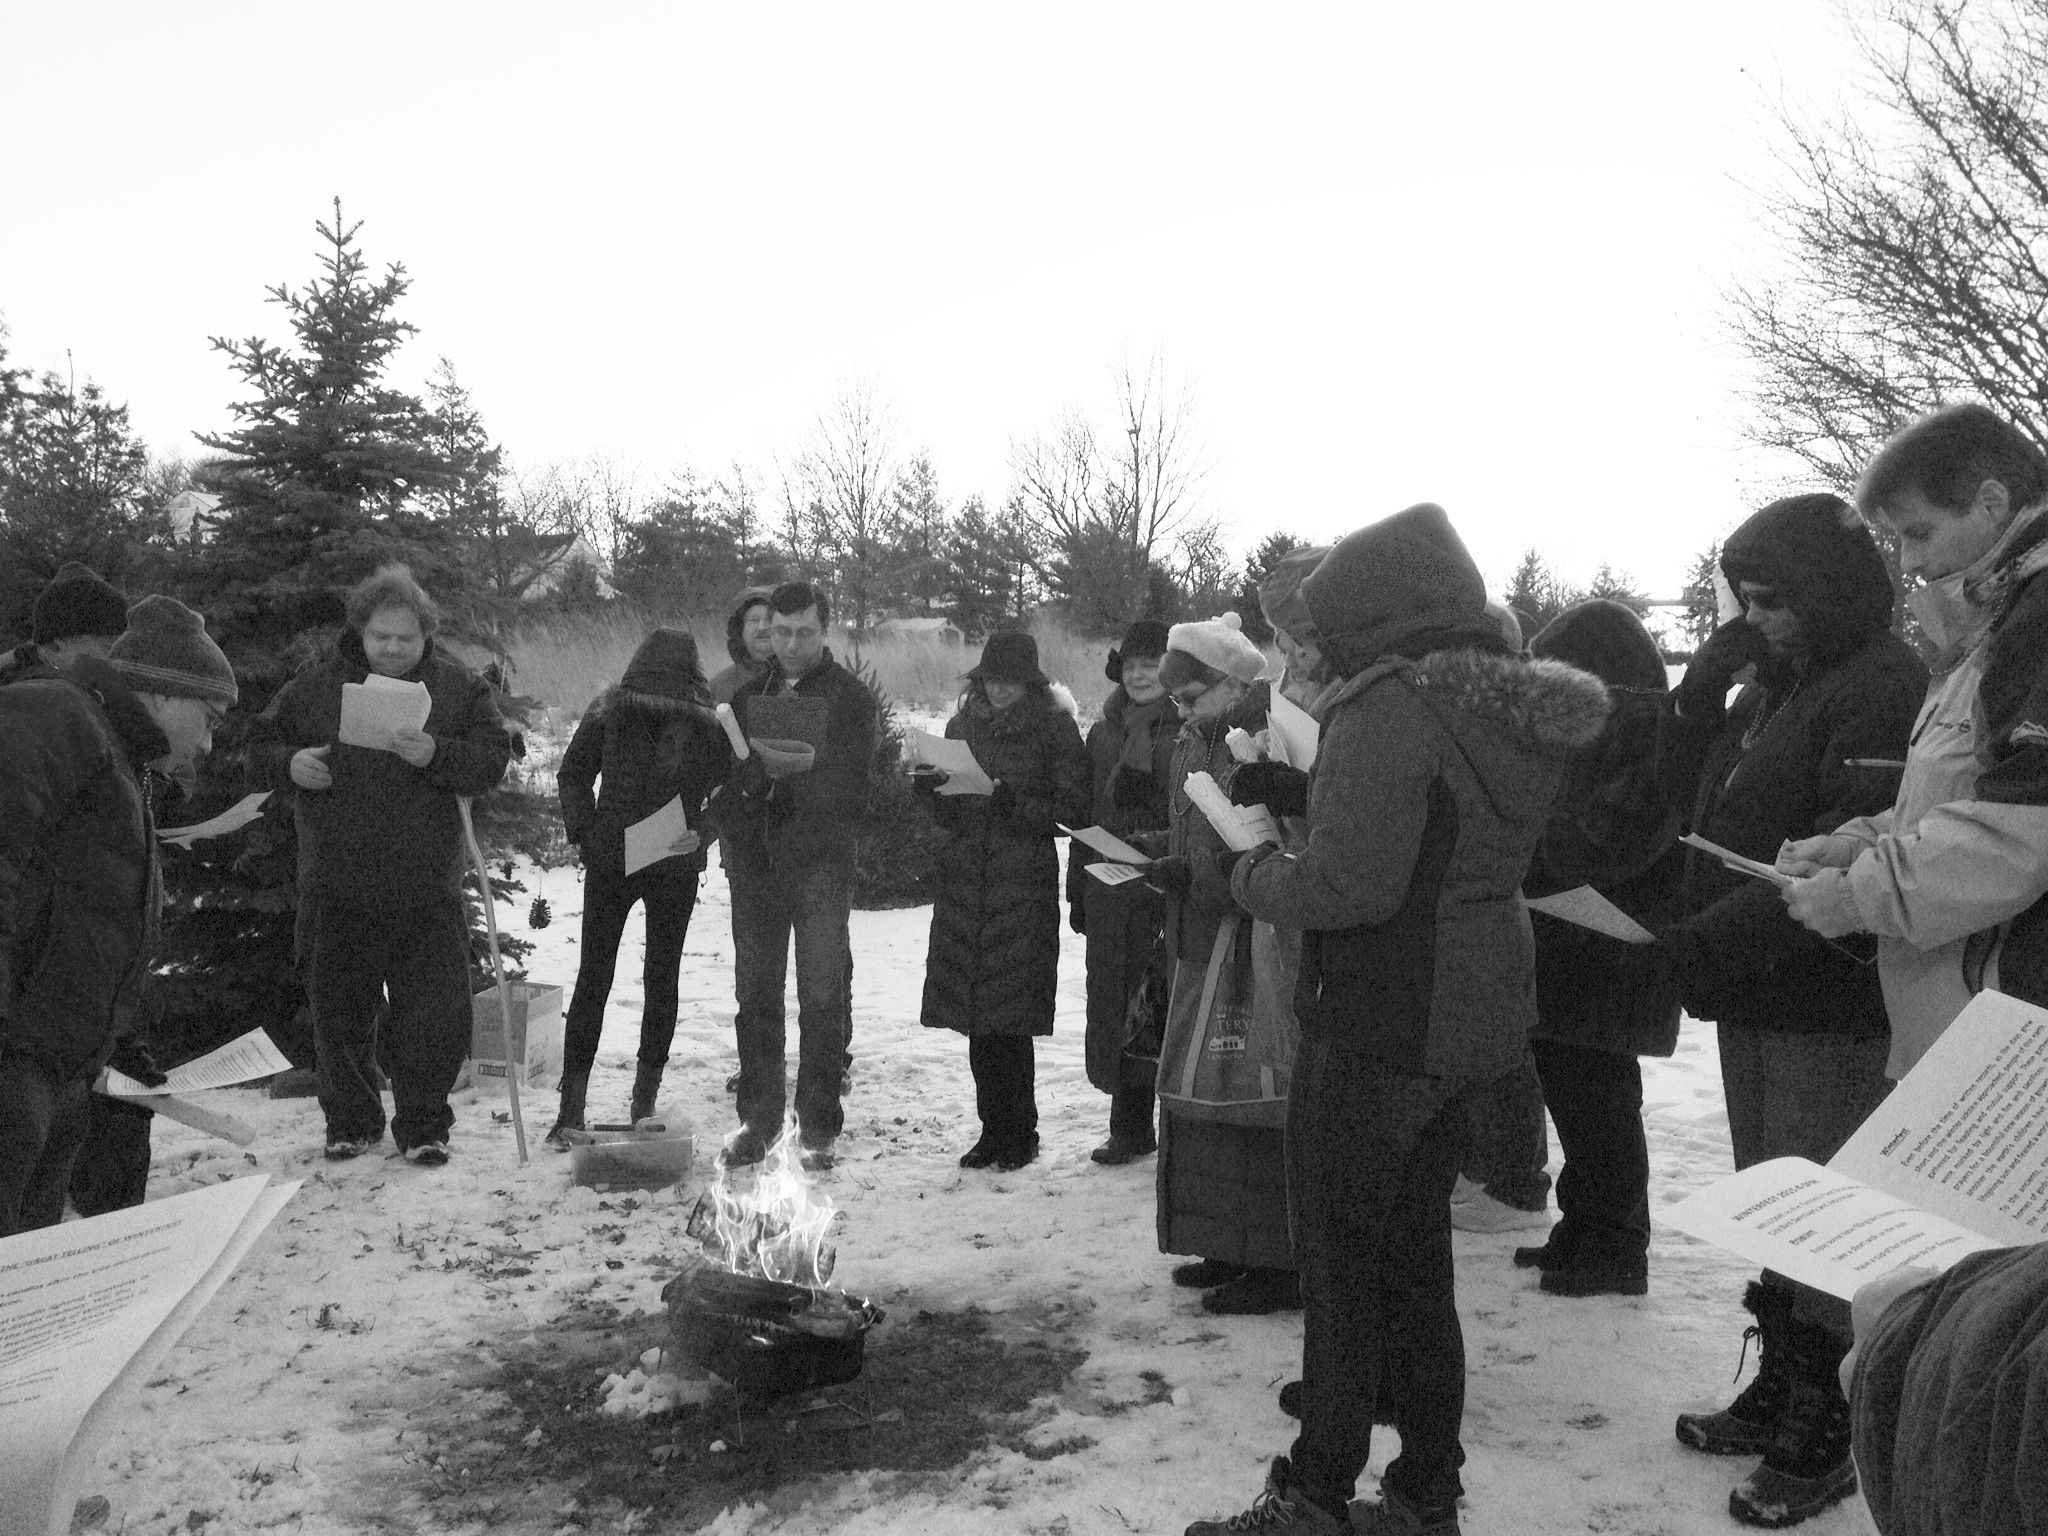 Both professors and students attended the annual Winterfest and fed the birds while gathering around a fire.  (PHOTOS BY ROSANNA SINGH)